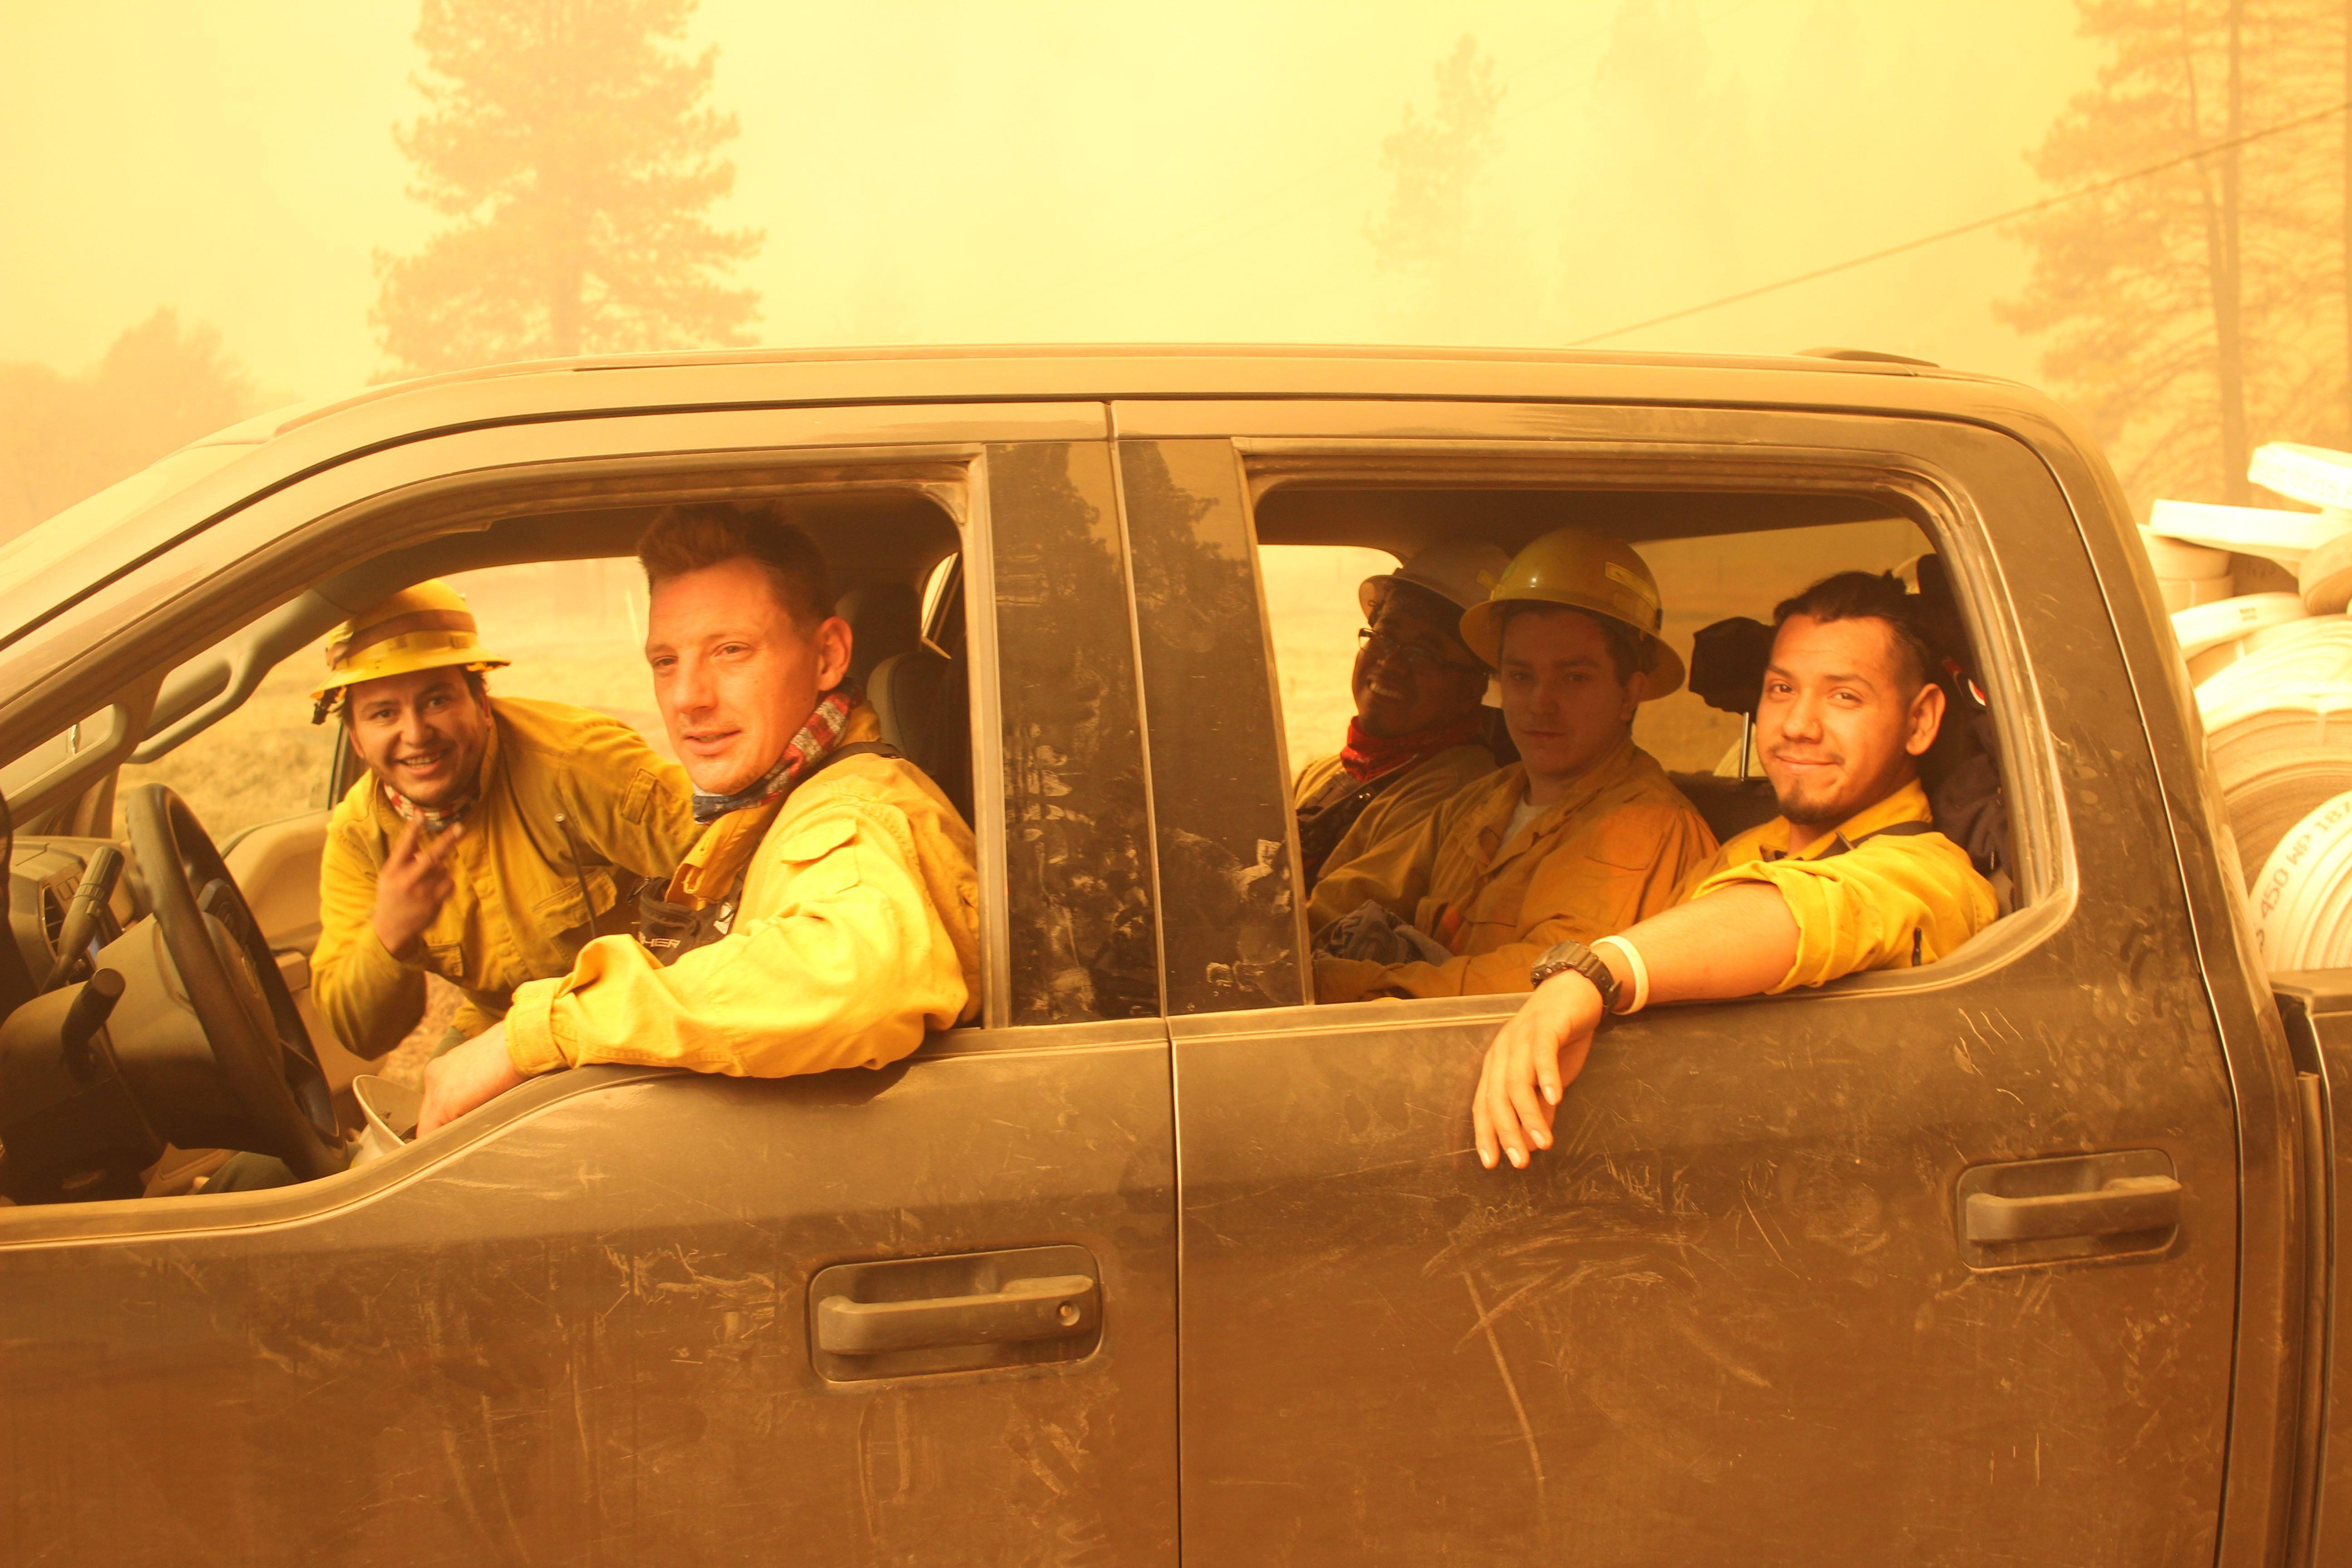 Crew cab truck full of firefighters. Photo Credit: Mike McMillan/USFS